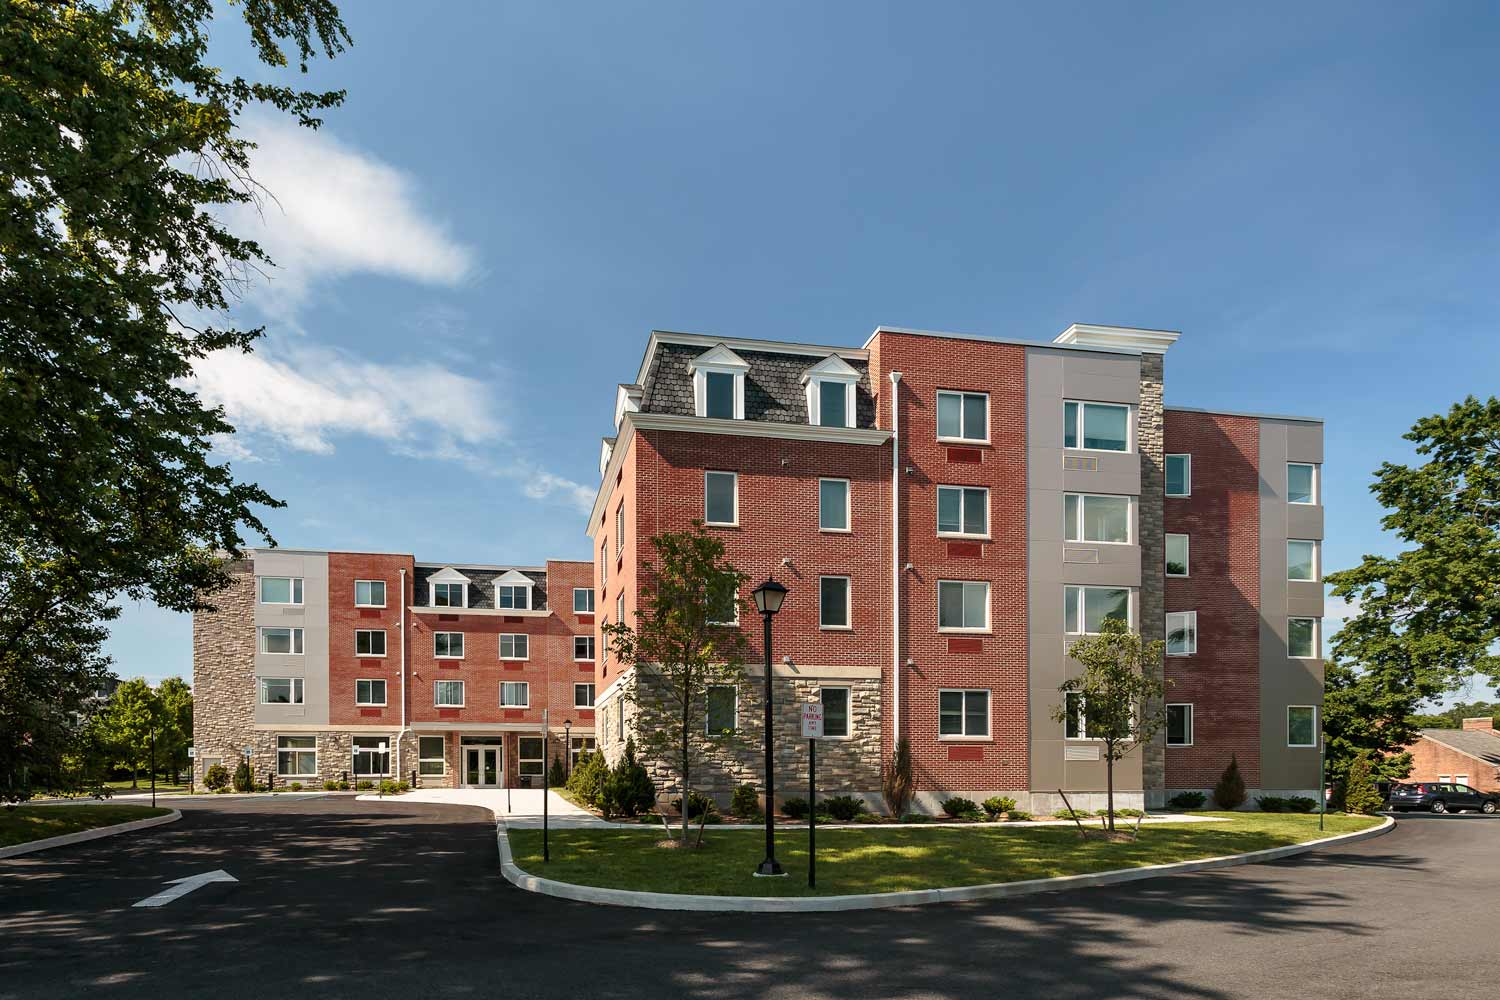 The Friedrichs are LEED, affordable senior apartments added to the Wartburg Adult Care Community